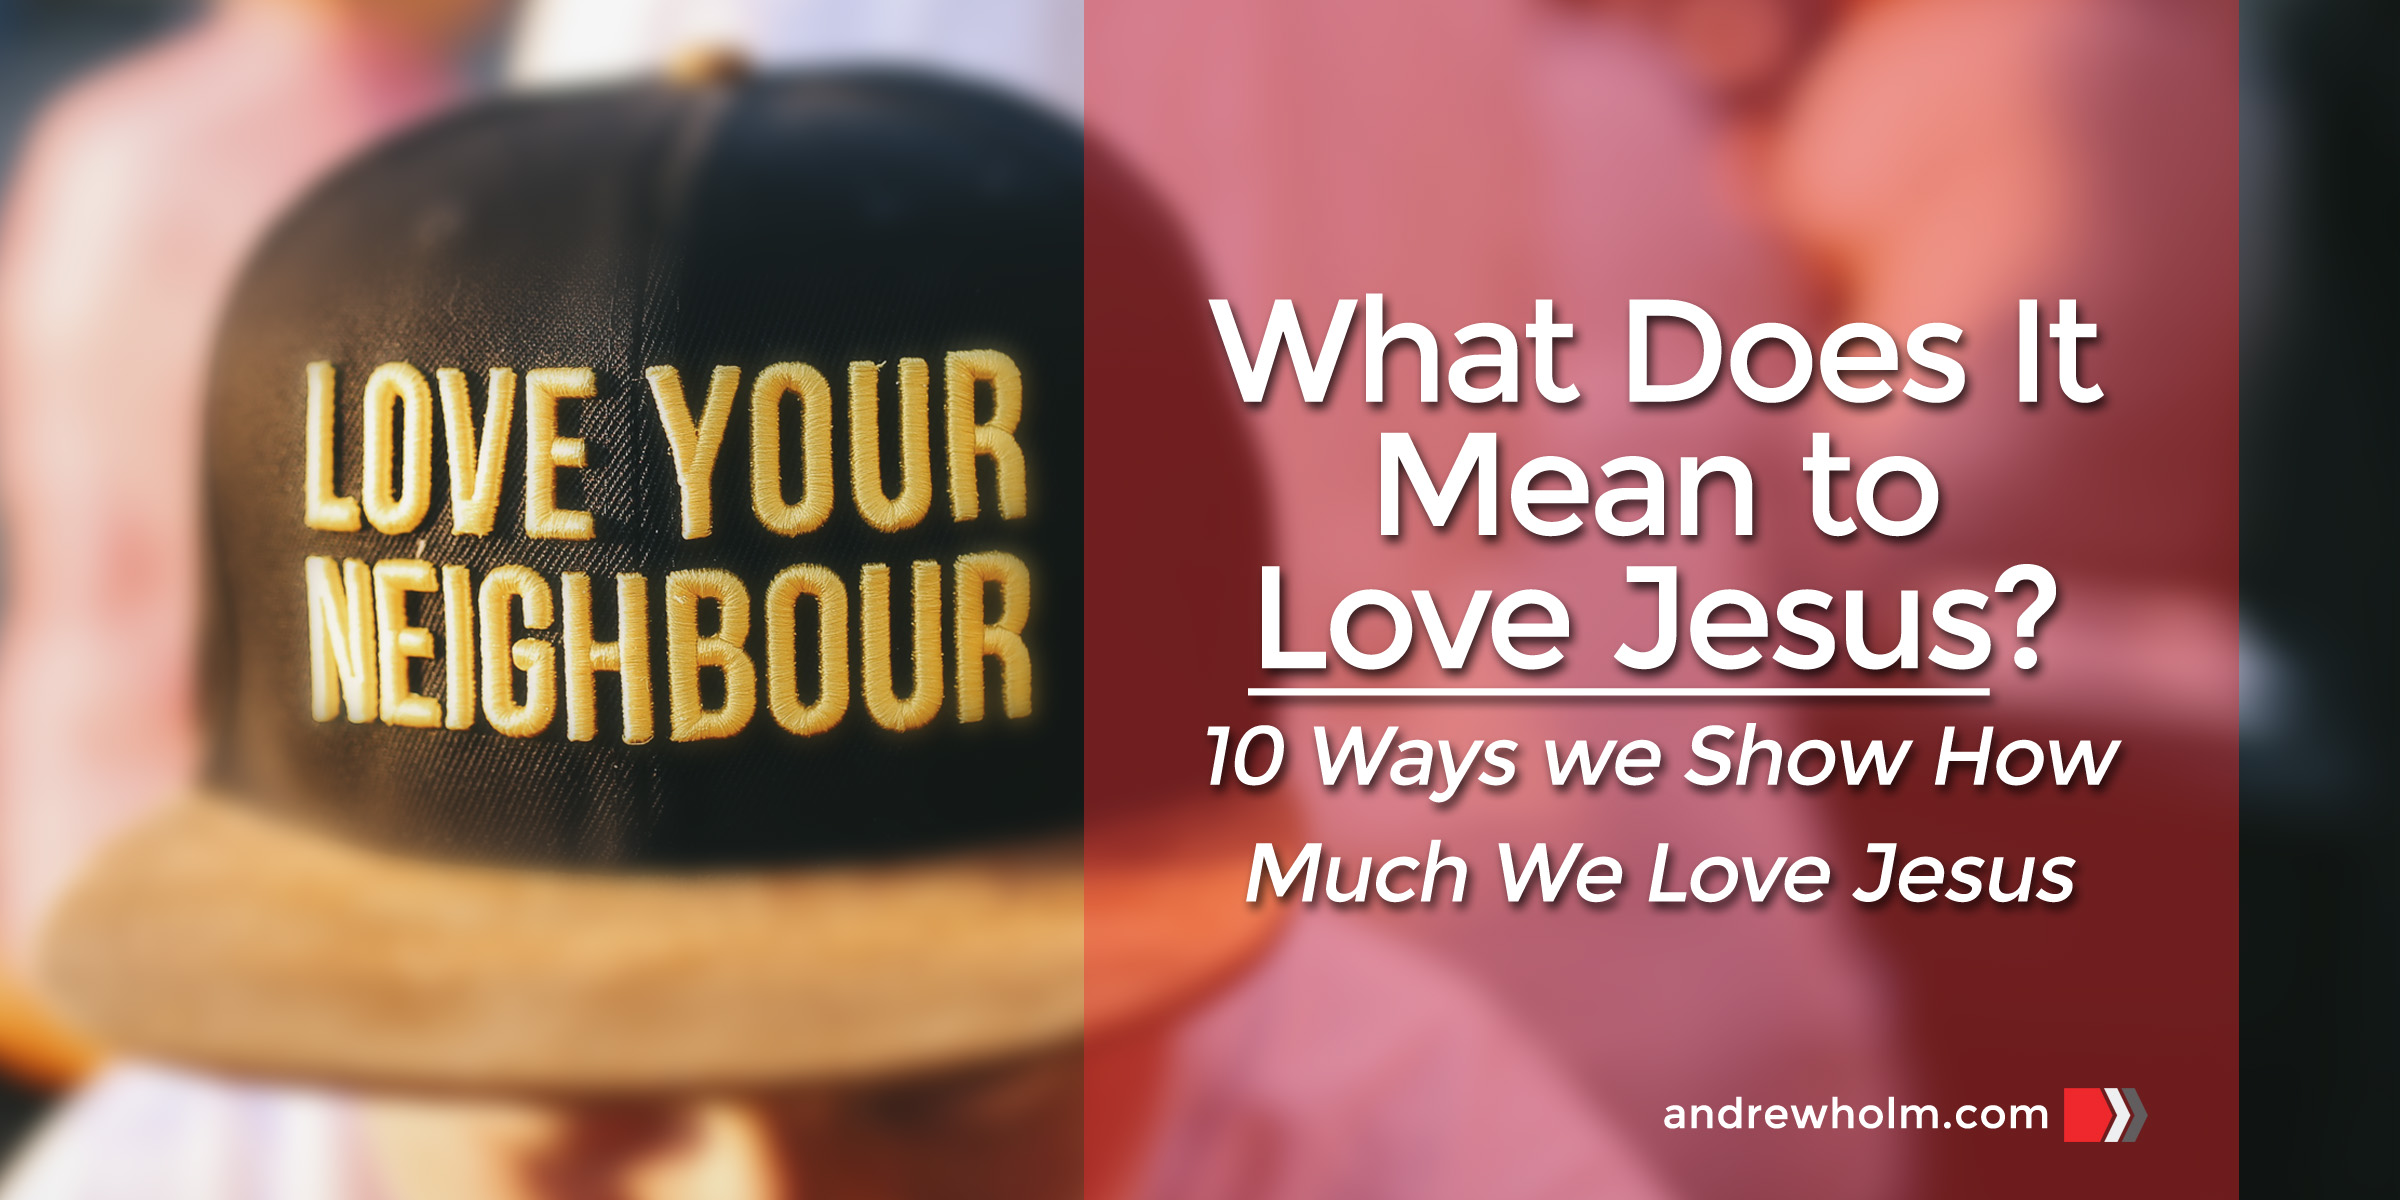 What does it mean to Love Jesus?